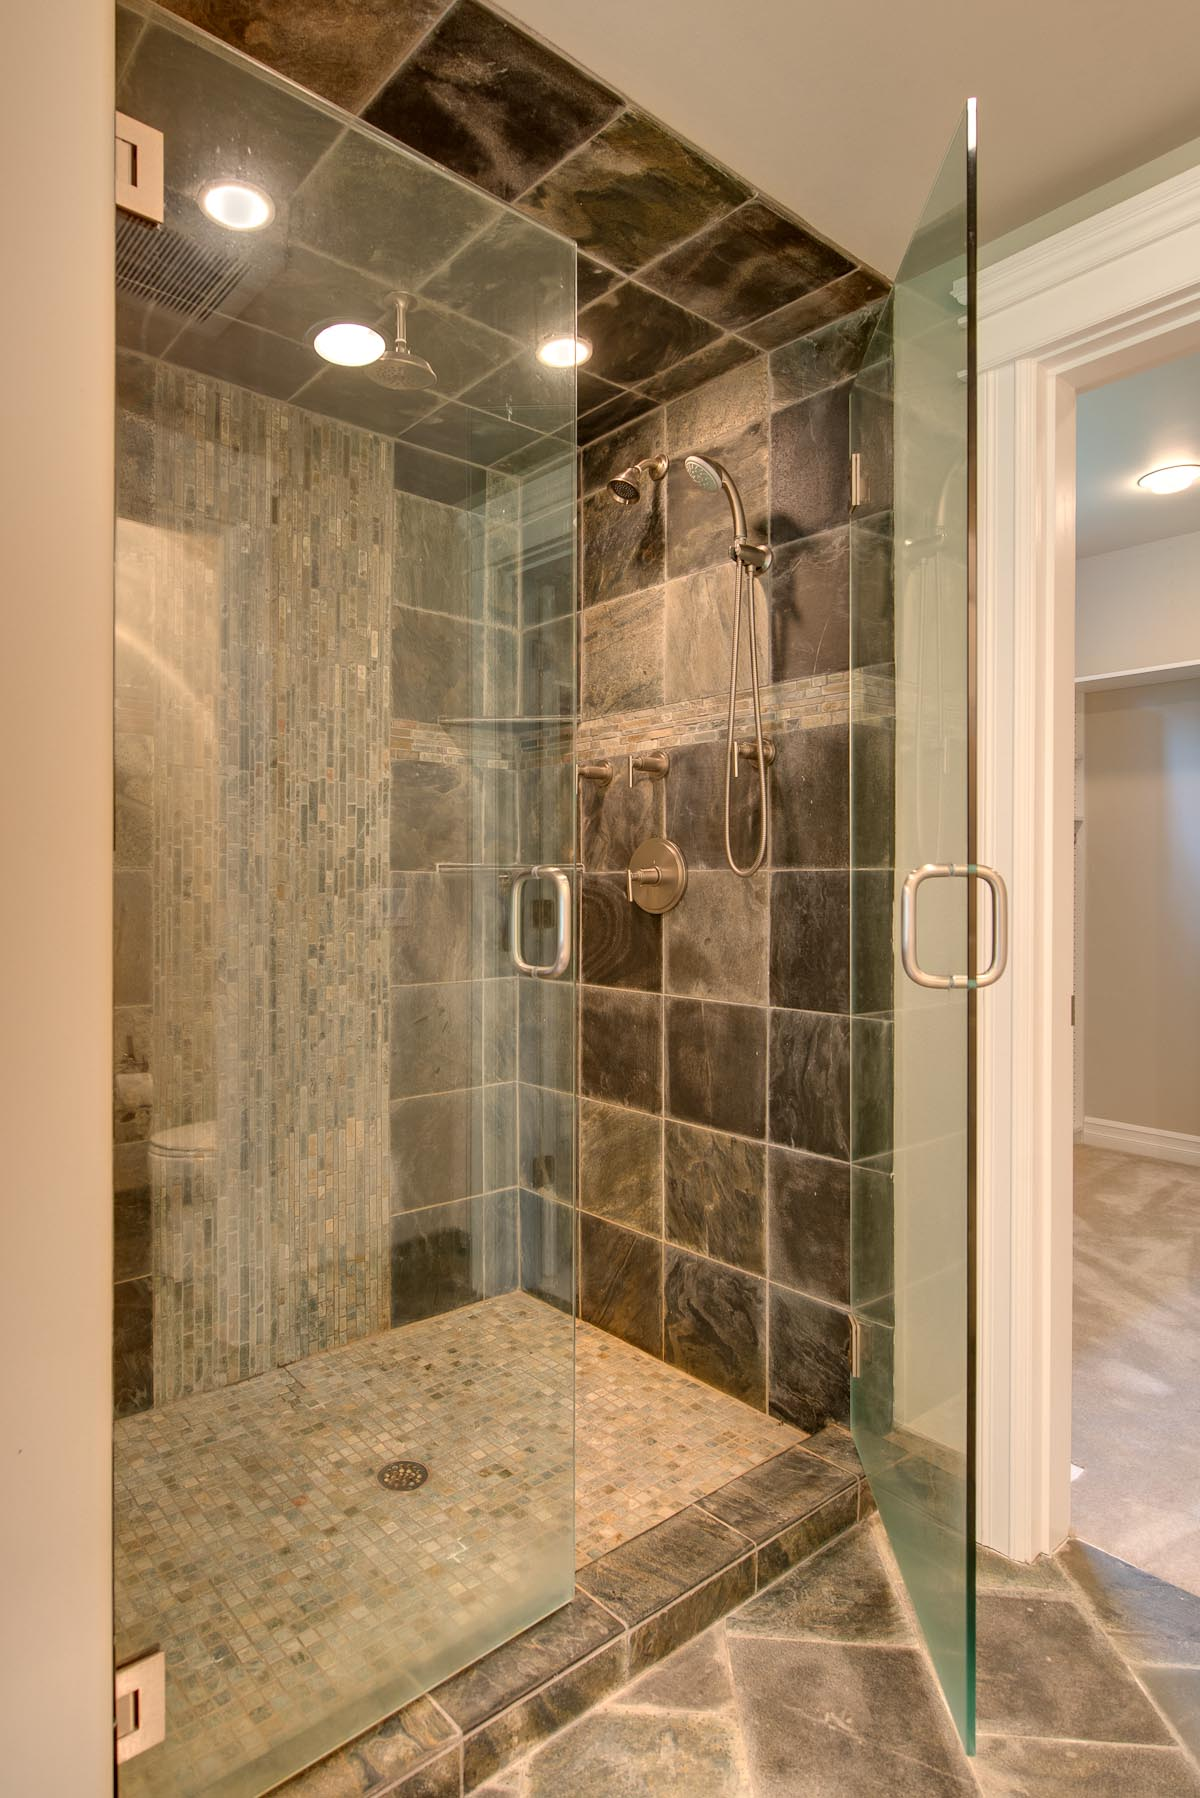 inspiration-bathroom-stylish-grey-ceramic-bathroom-tiles-with-swing-frameless-glass-door-as-inspiring-small-showers-designs-cute-small-showers-smart-space-saving-ideas-and-design